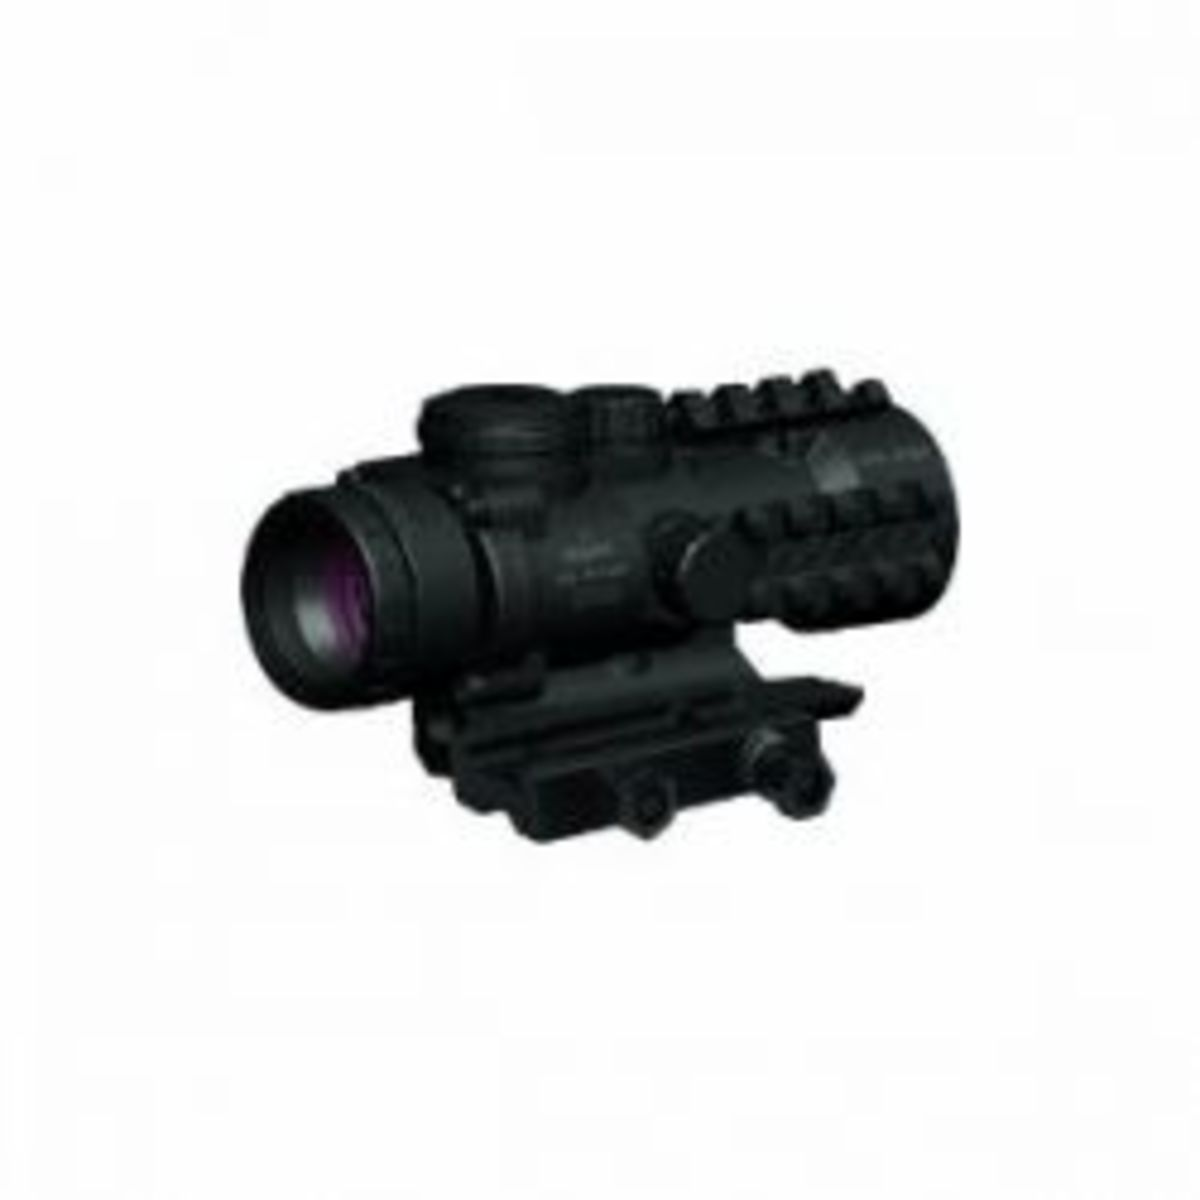 Best AR 15 scope under $500